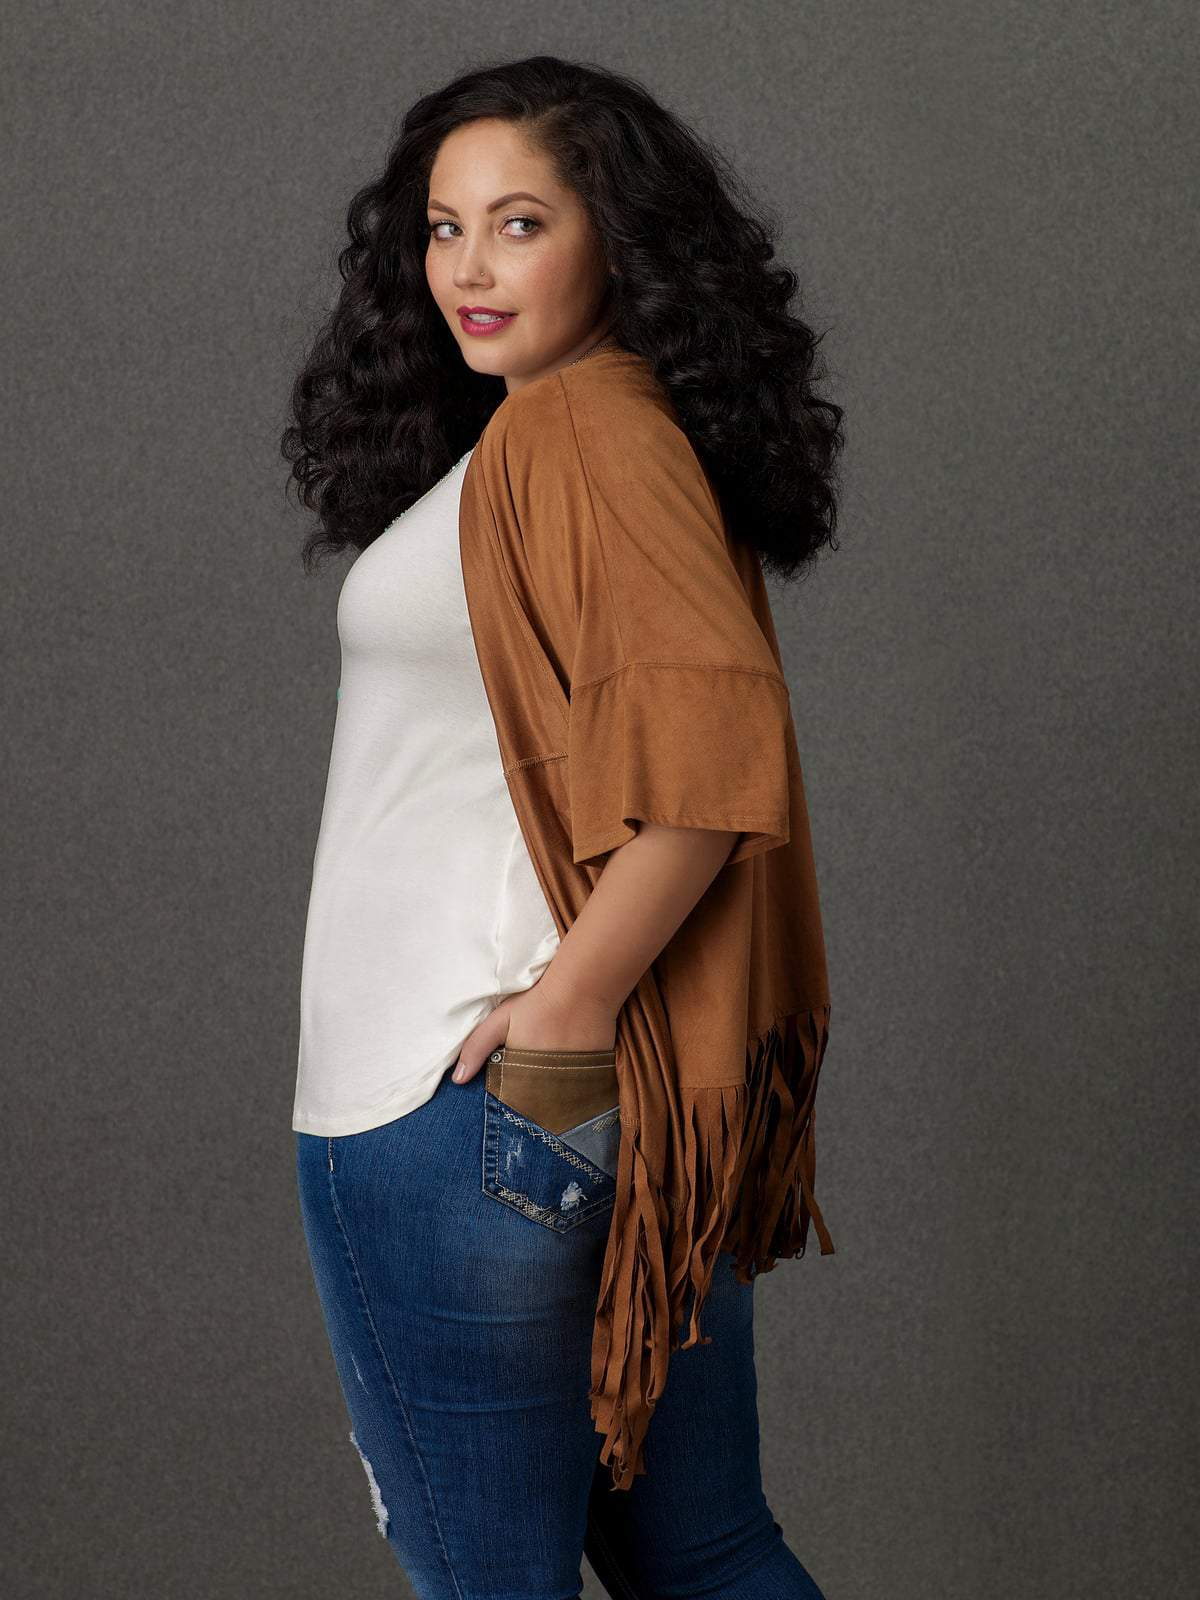 Sears SImply Emma Fringed Kimono Top and Distressed Skinny Jeans